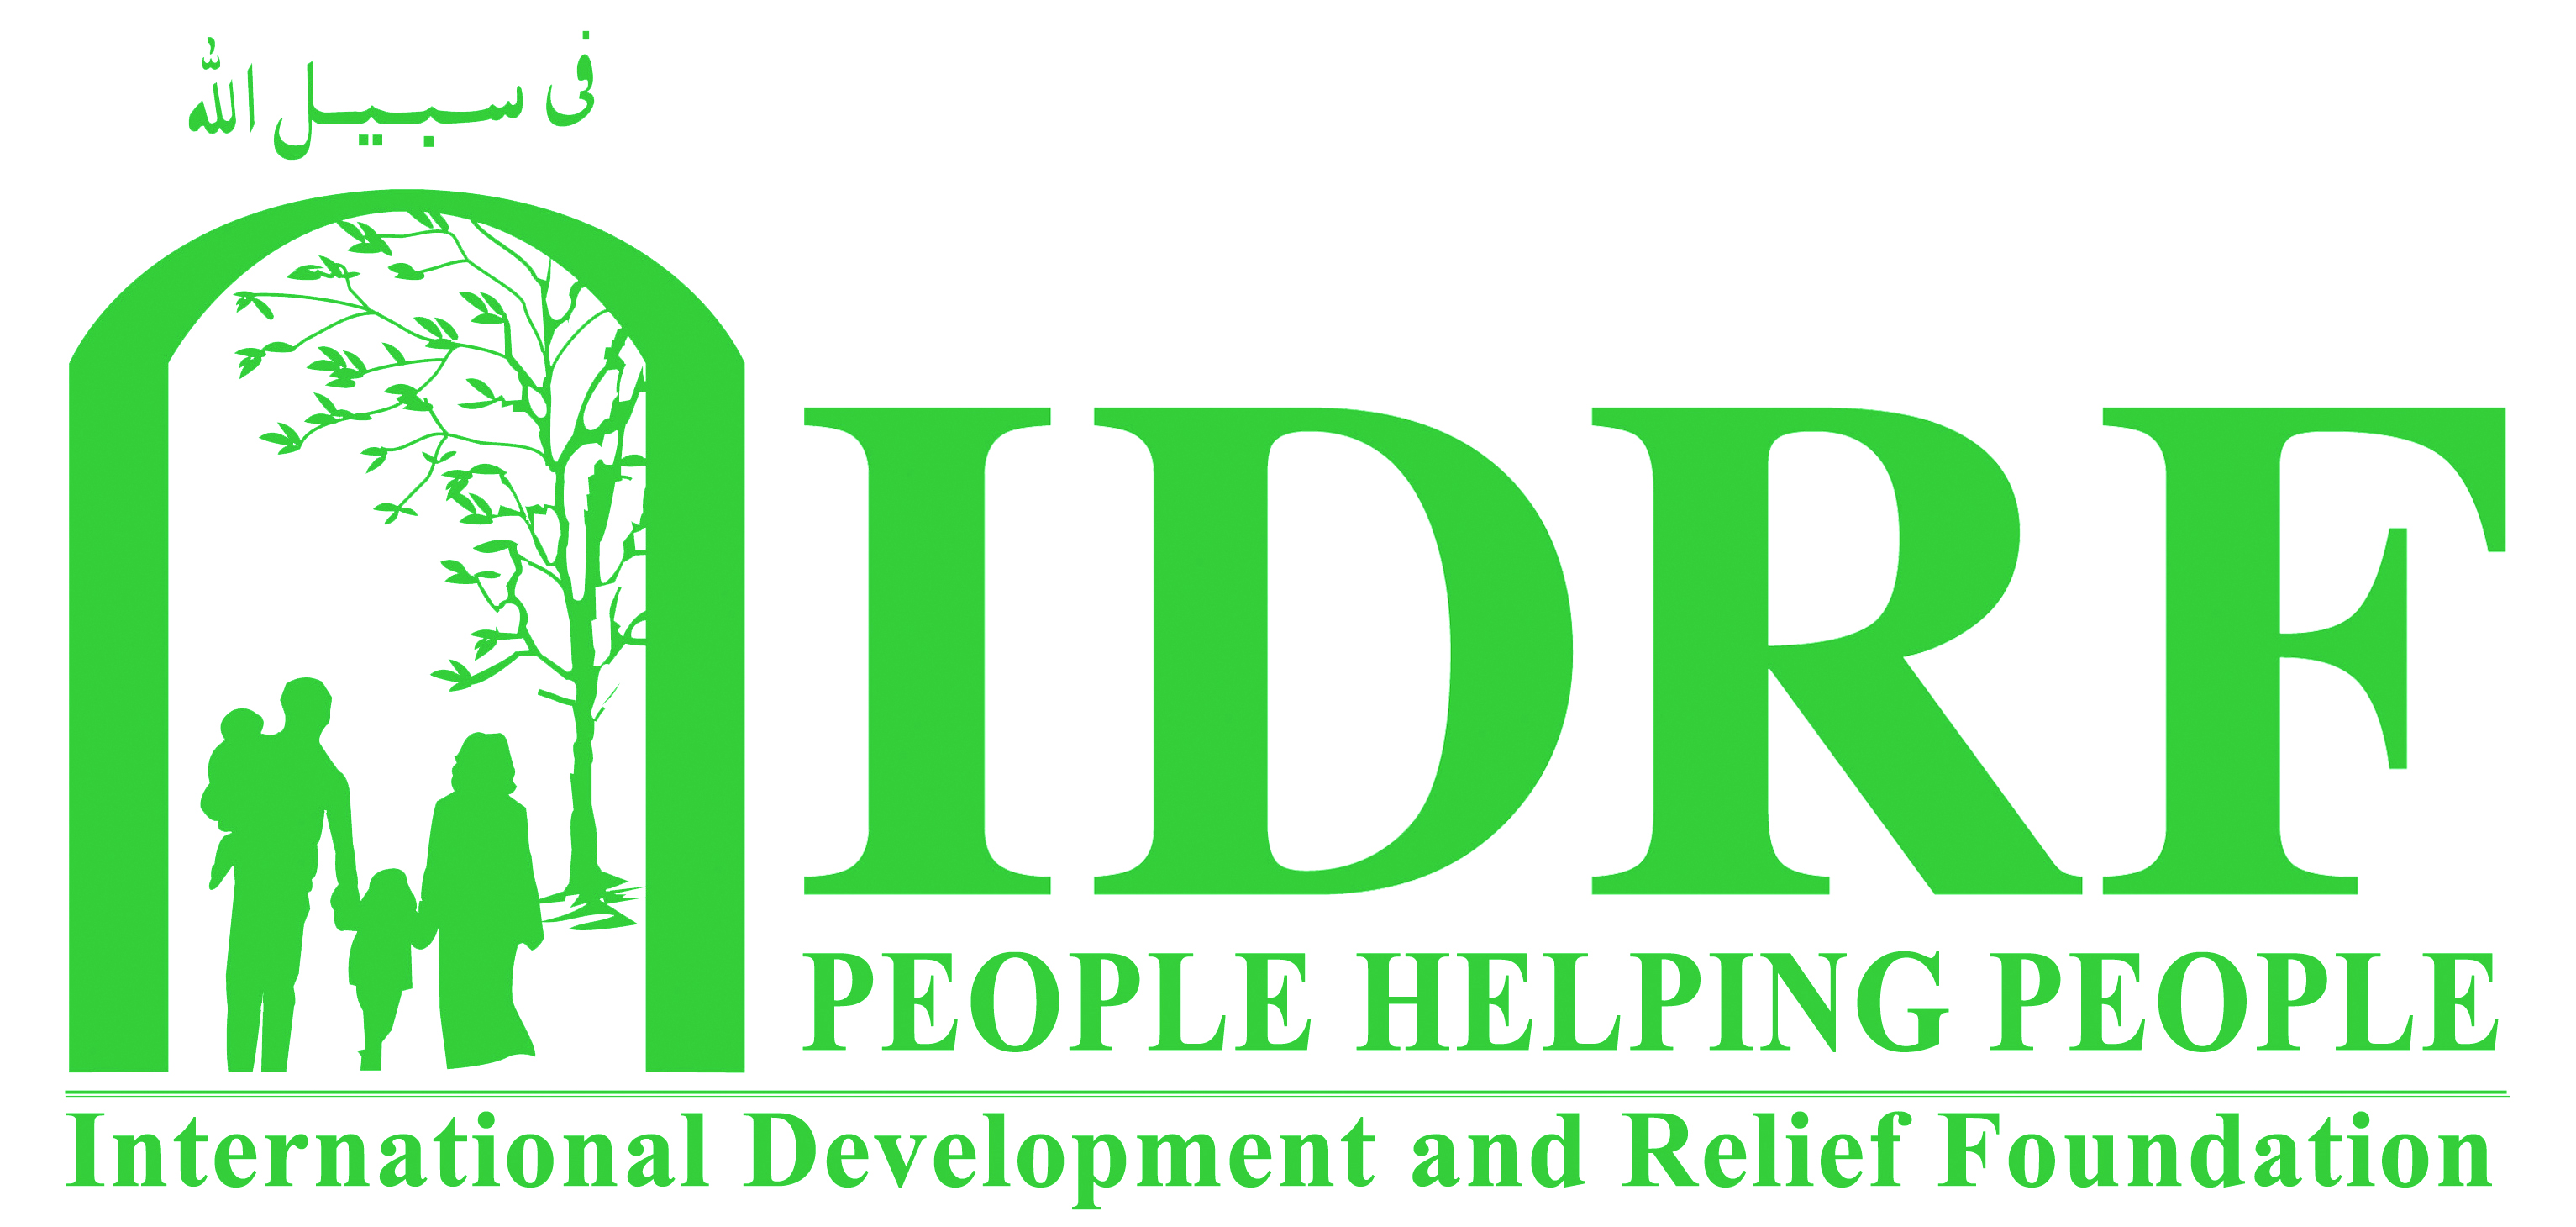 logo for International Development and Relief Foundation